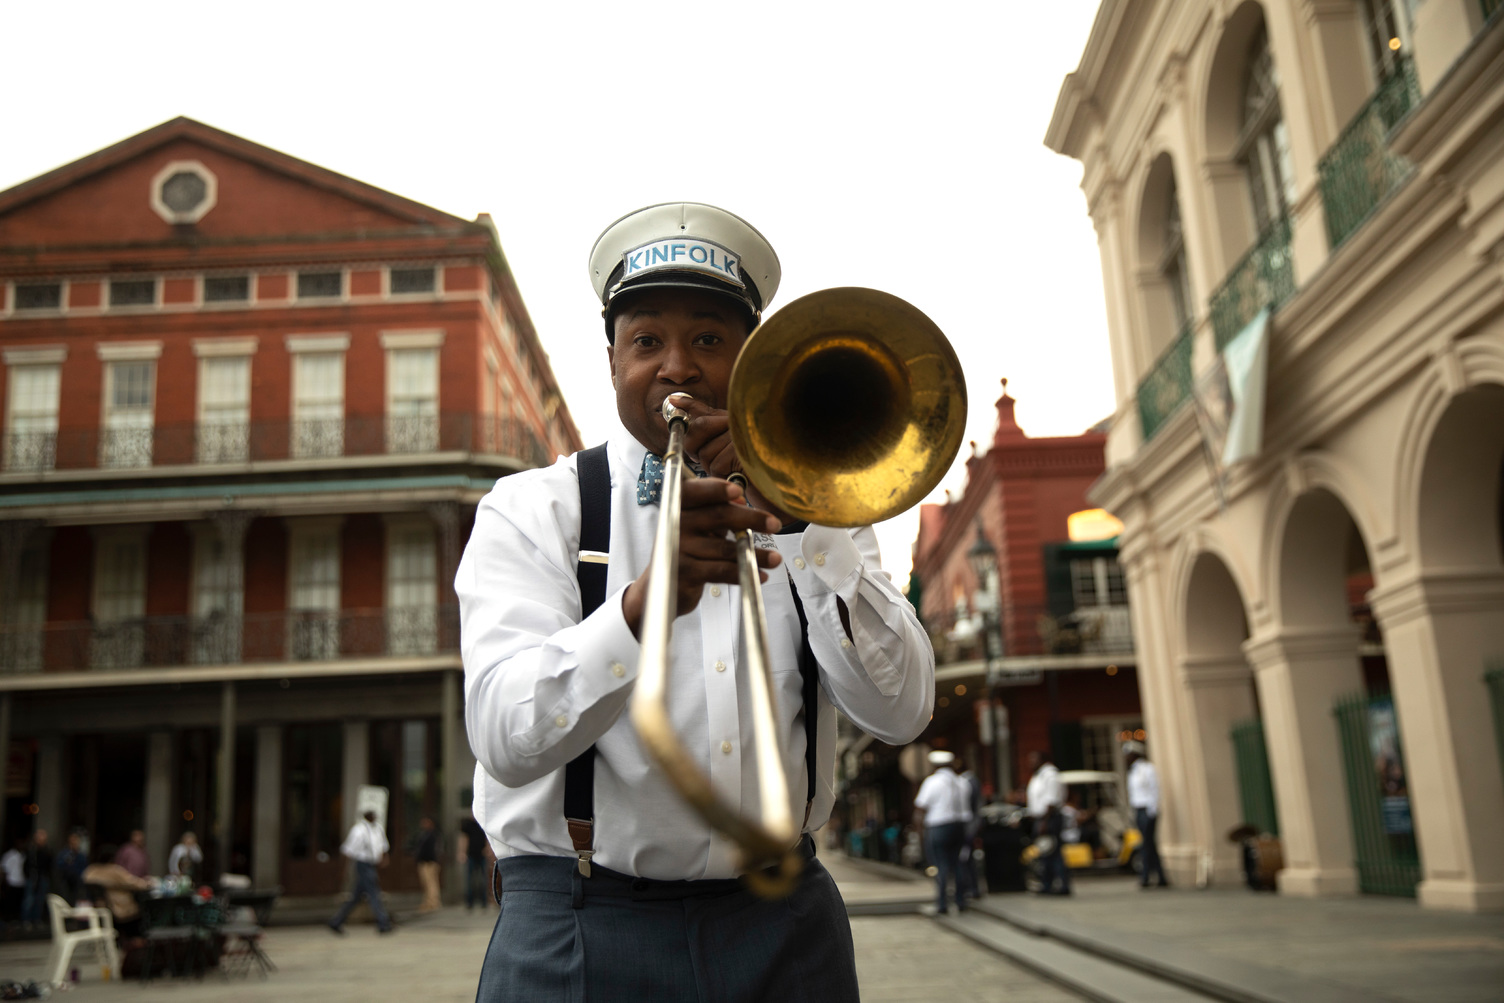 A man with a trumpet looking directly into the camera on a New Orleans street.